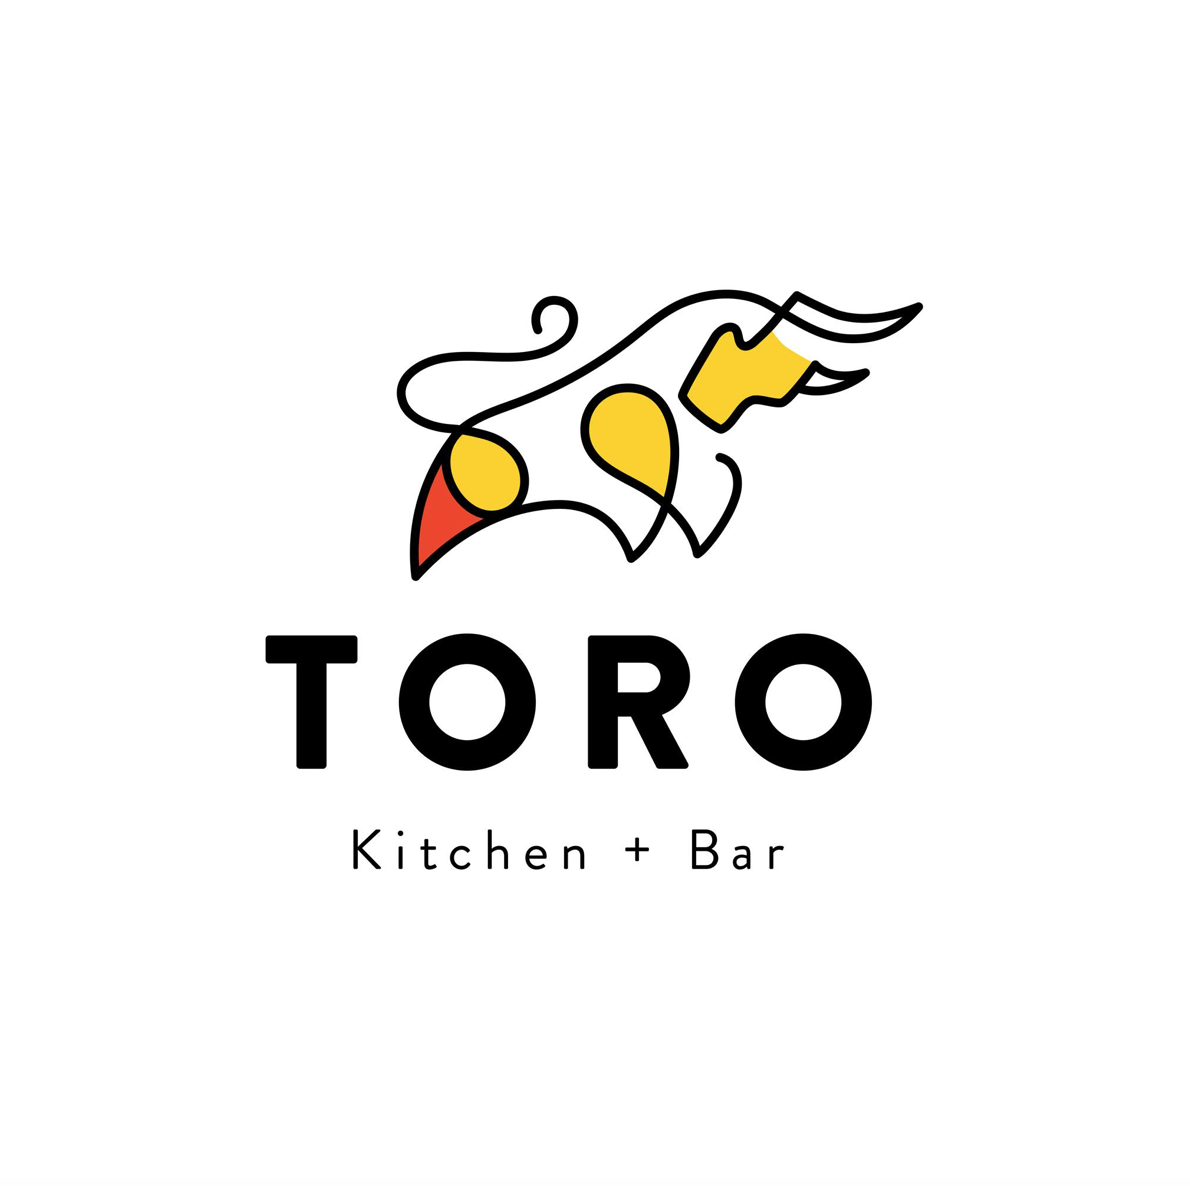 Toro Kitchen + Bar (Stone Oak) , Lunch & Dinner  115 N Loop 1604 E #1105, San Antonio, 78232  P 210-592-1075